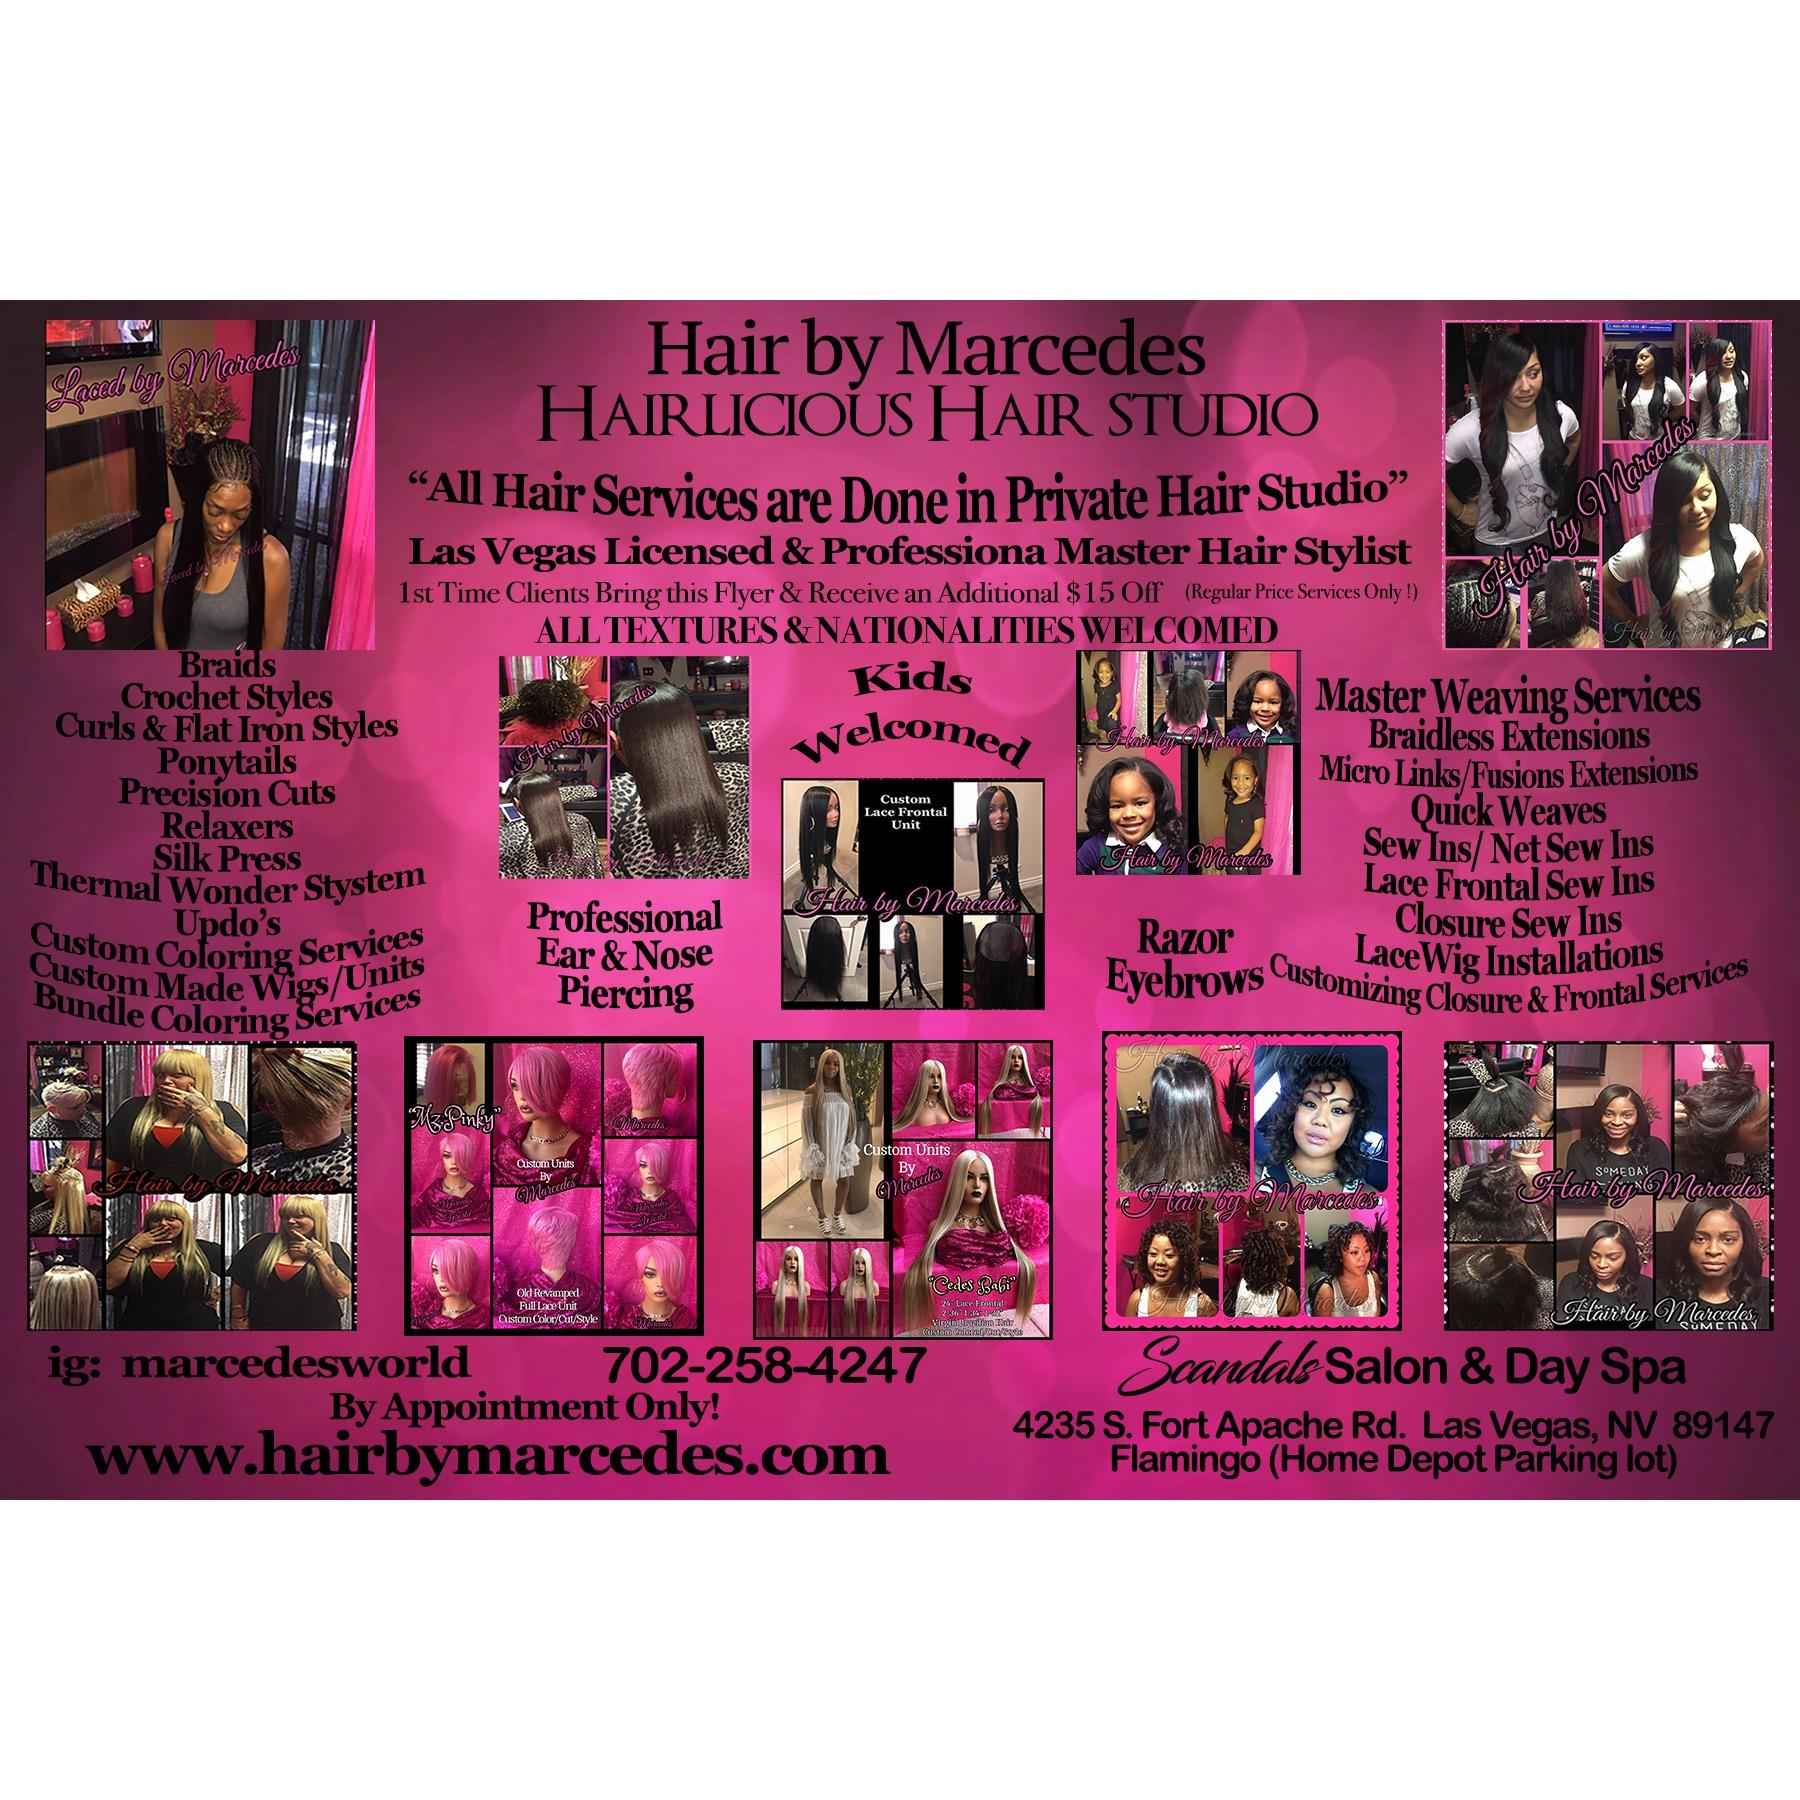 Hair by Marcedes/Hairlicious Hair Closet